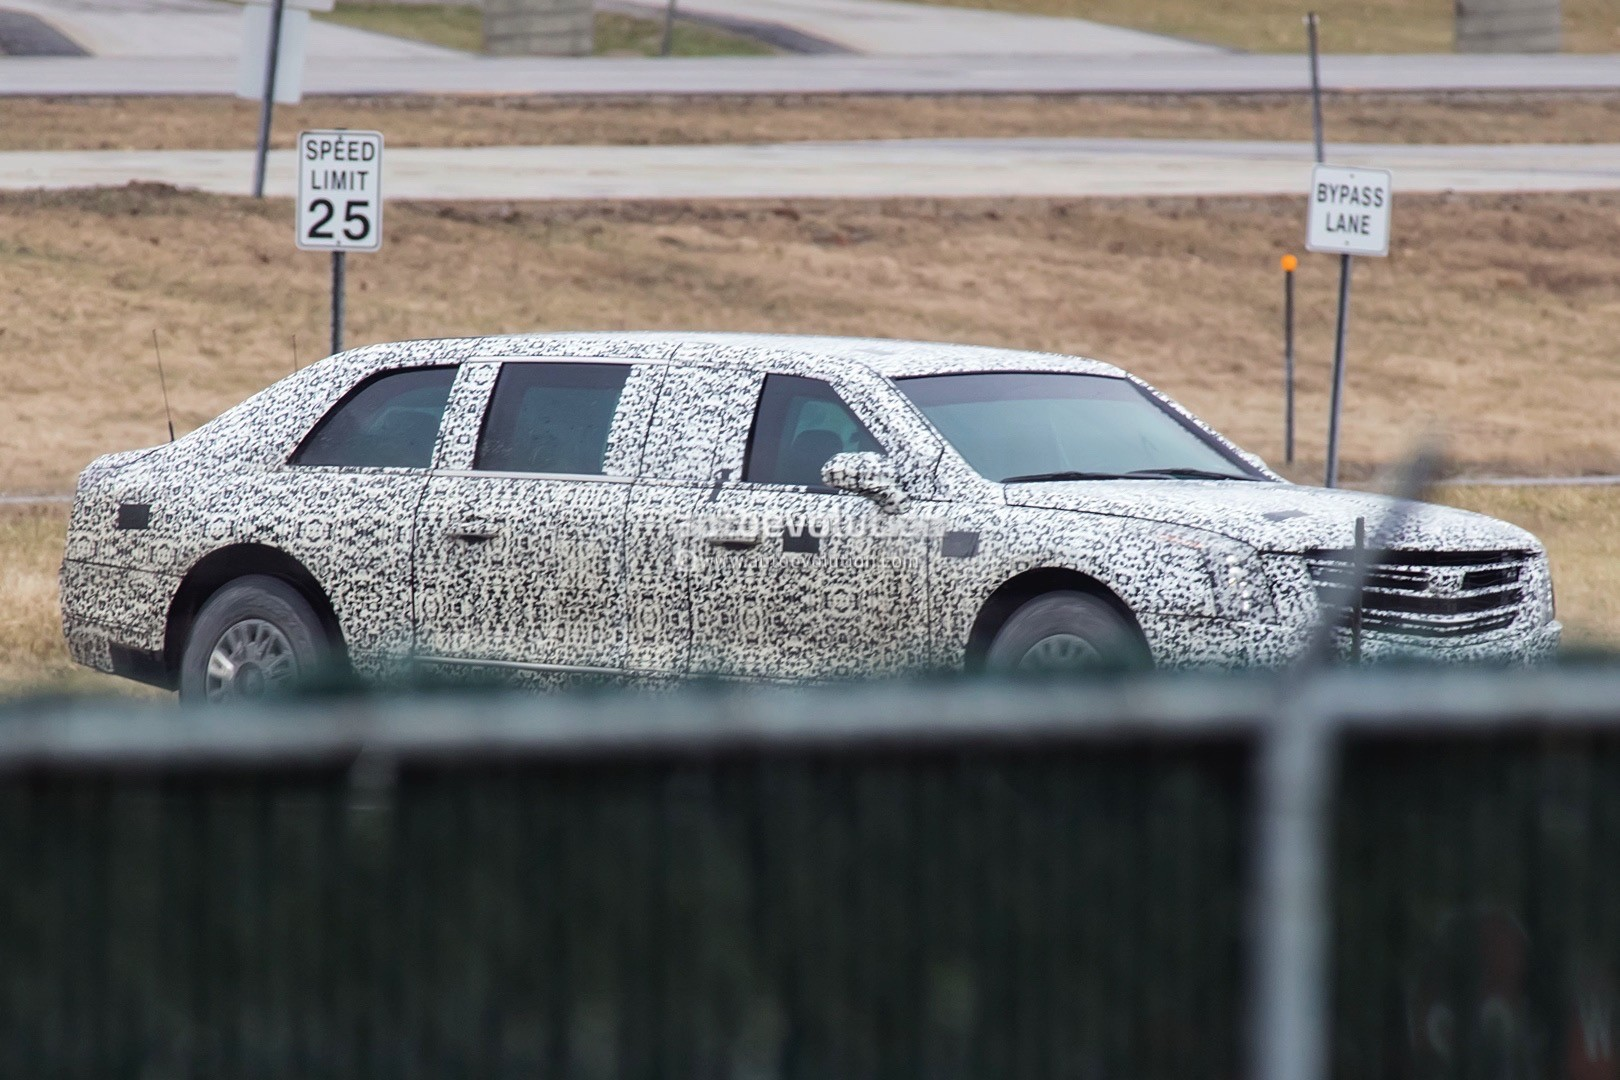 2018 Beast 2.0 Presidential Limo Spied, Looks Absolutely ...